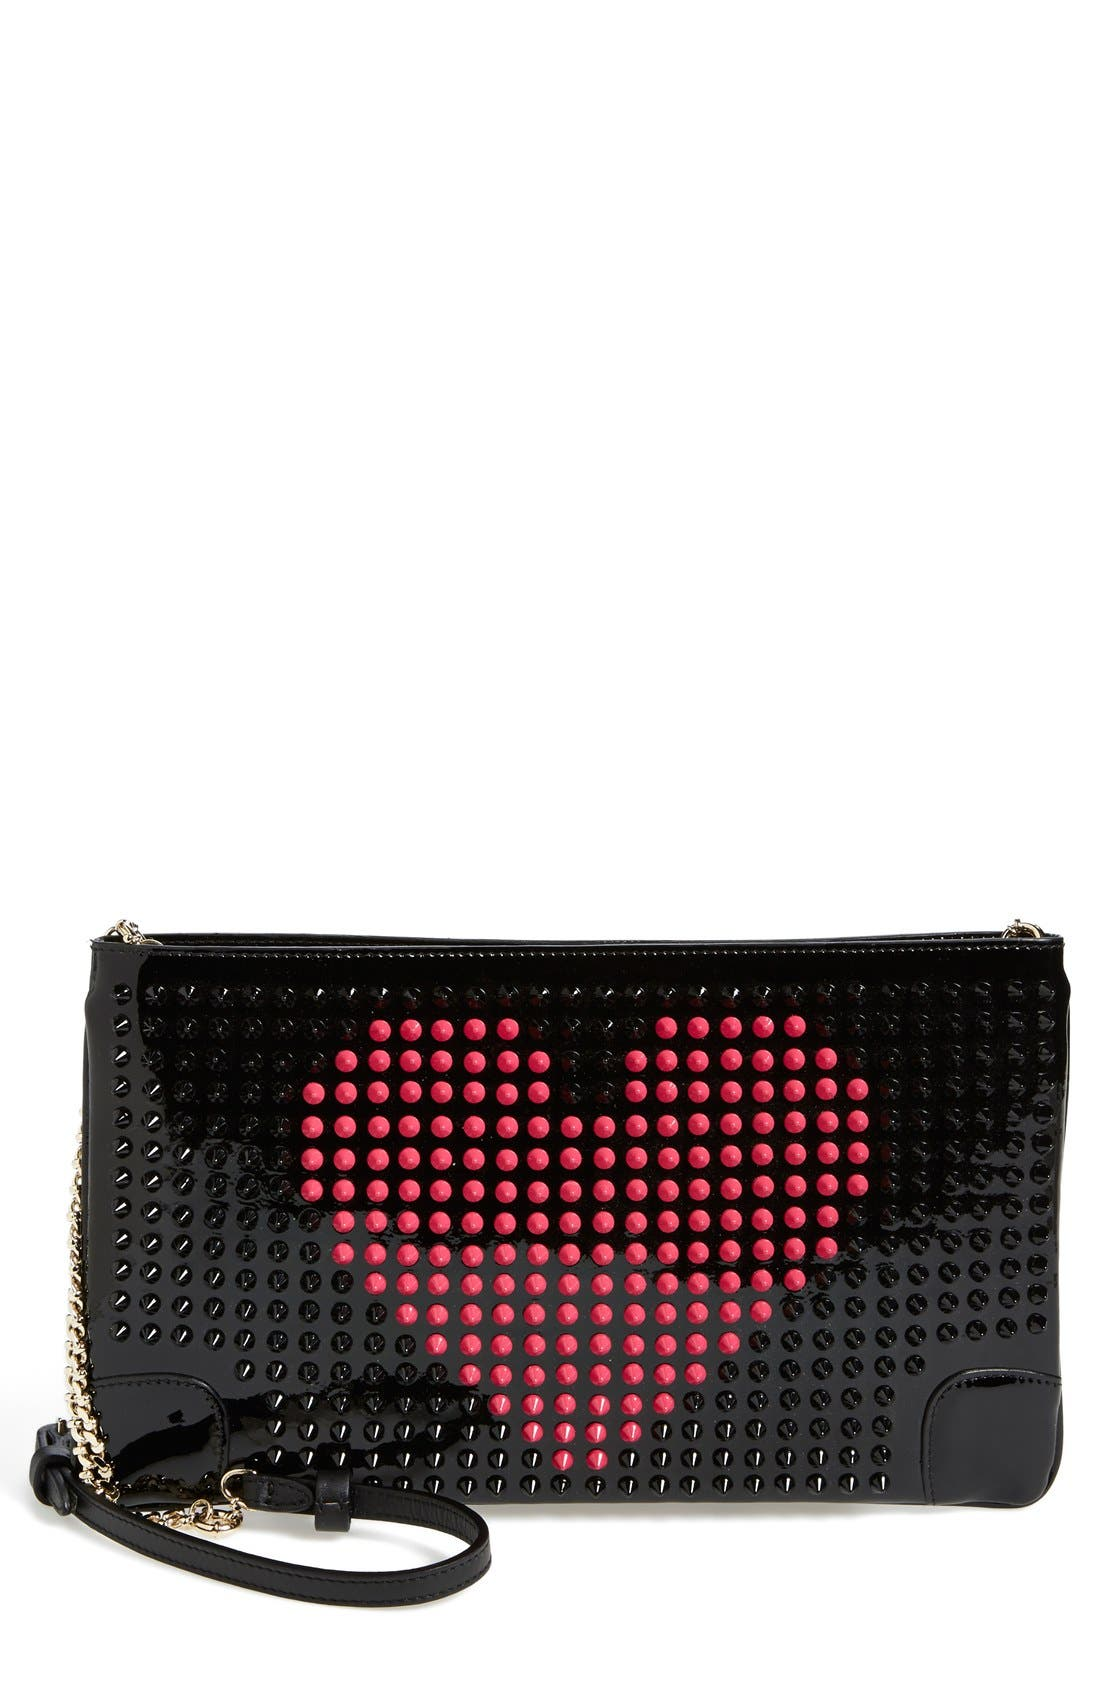 Alternate Image 1 Selected - Christian Louboutin 'Loubiposh Valentine' Studded Calfskin Clutch